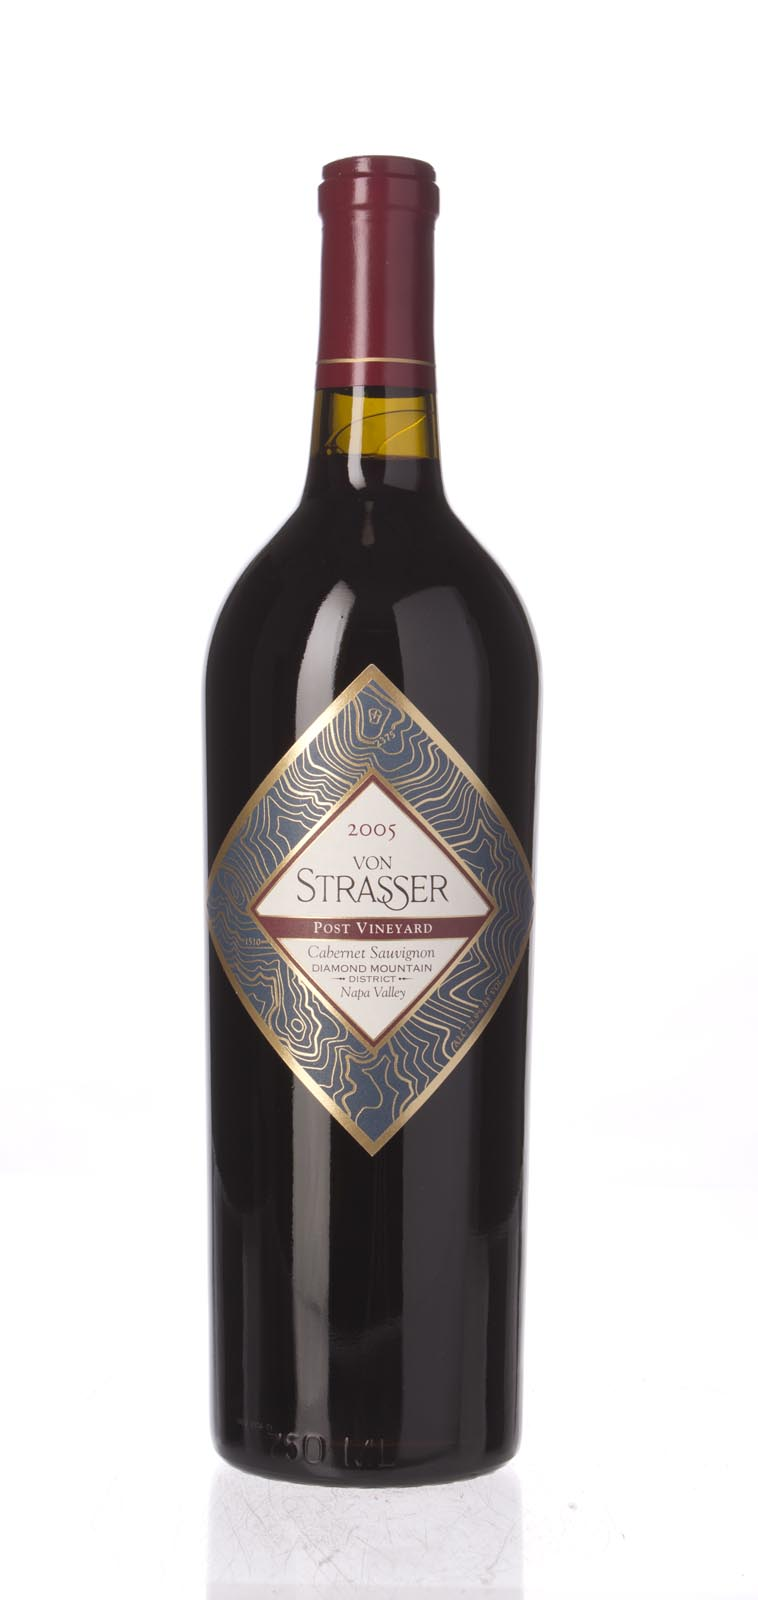 Von Strasser Cabernet Sauvignon Post Vineyard 2005, 750mL () from The BPW - Merchants of rare and fine wines.